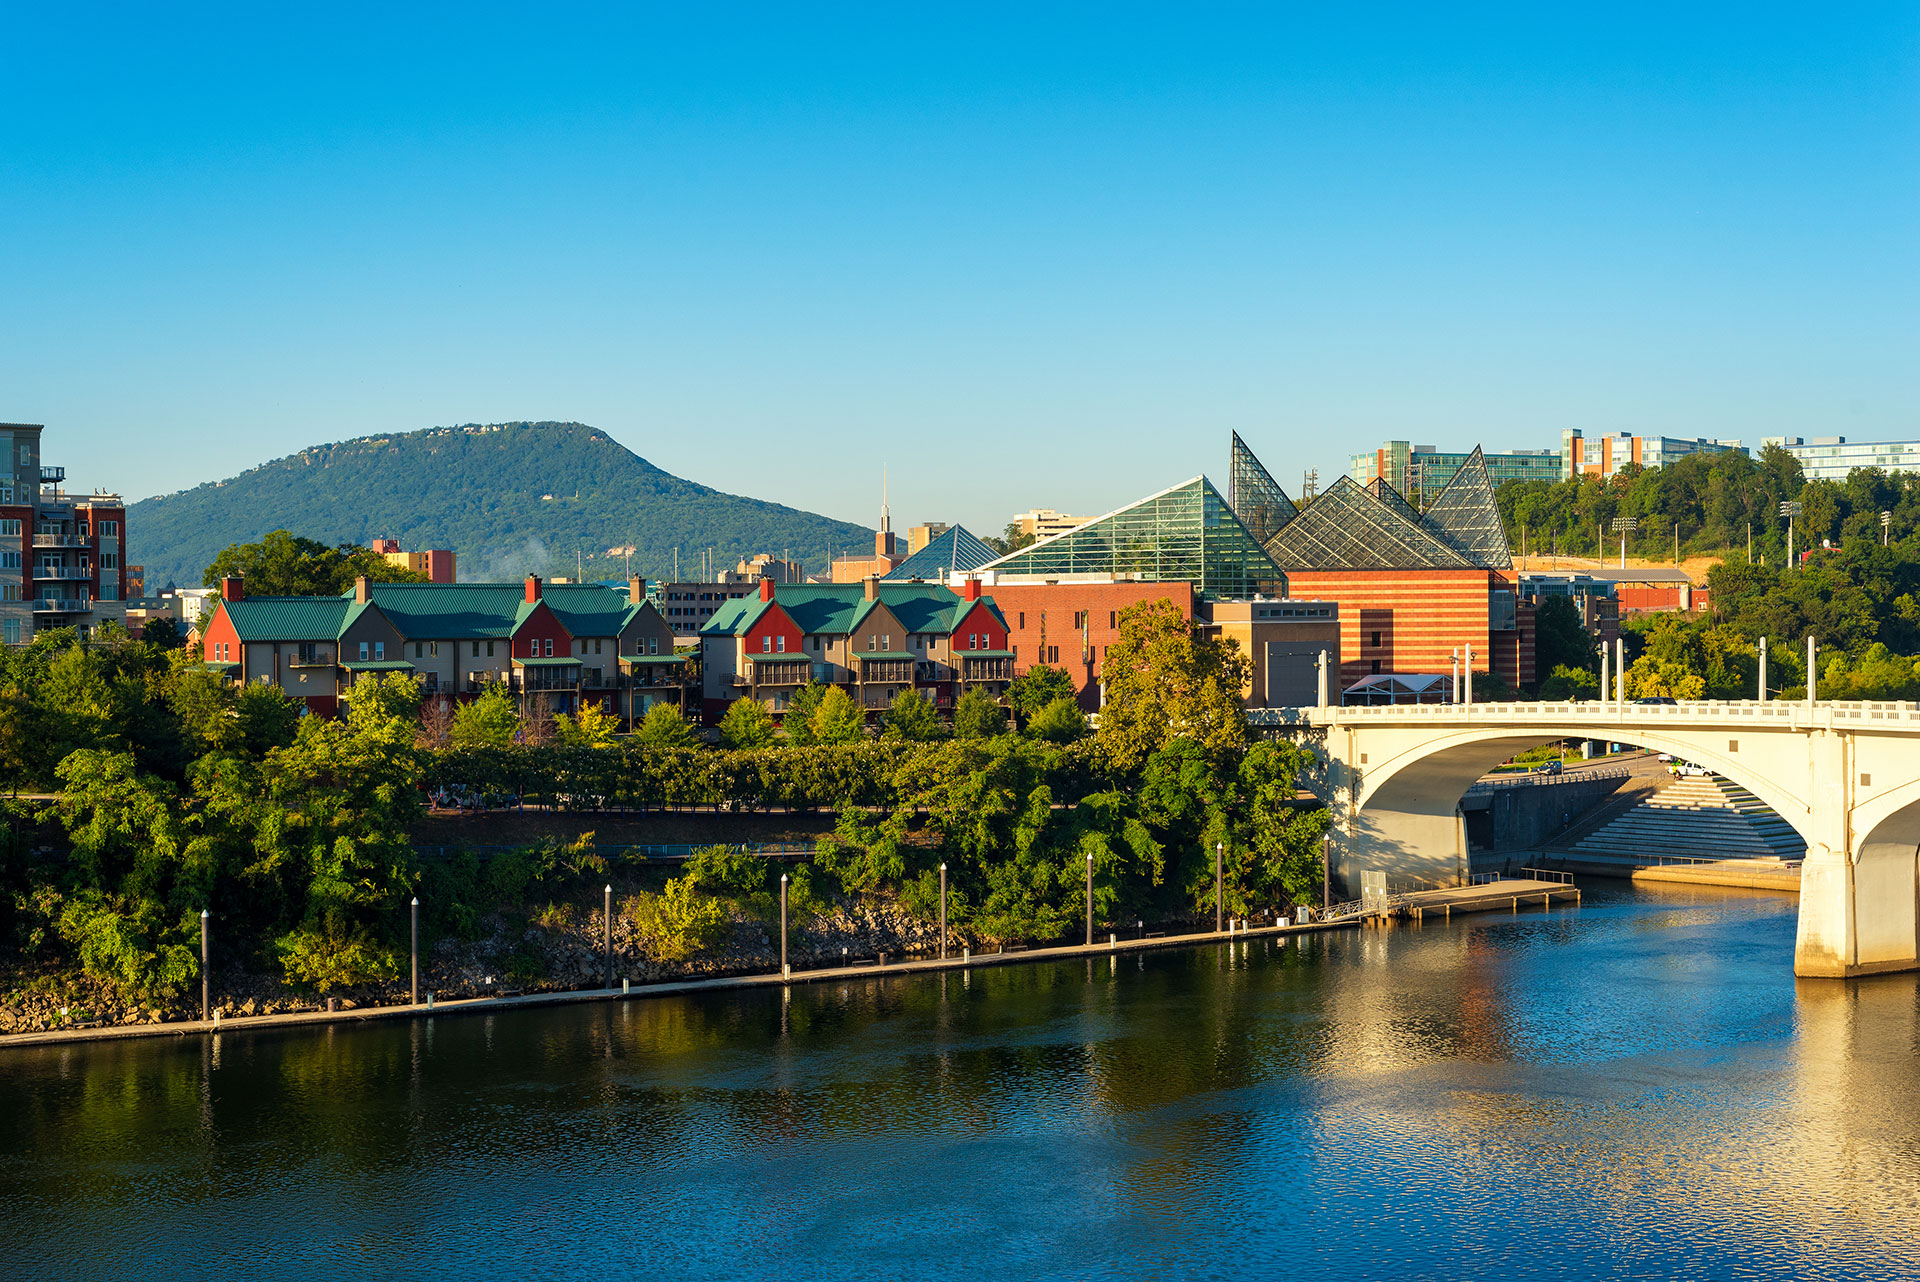 chattanooga-tennessee-lookout-mountain-rising